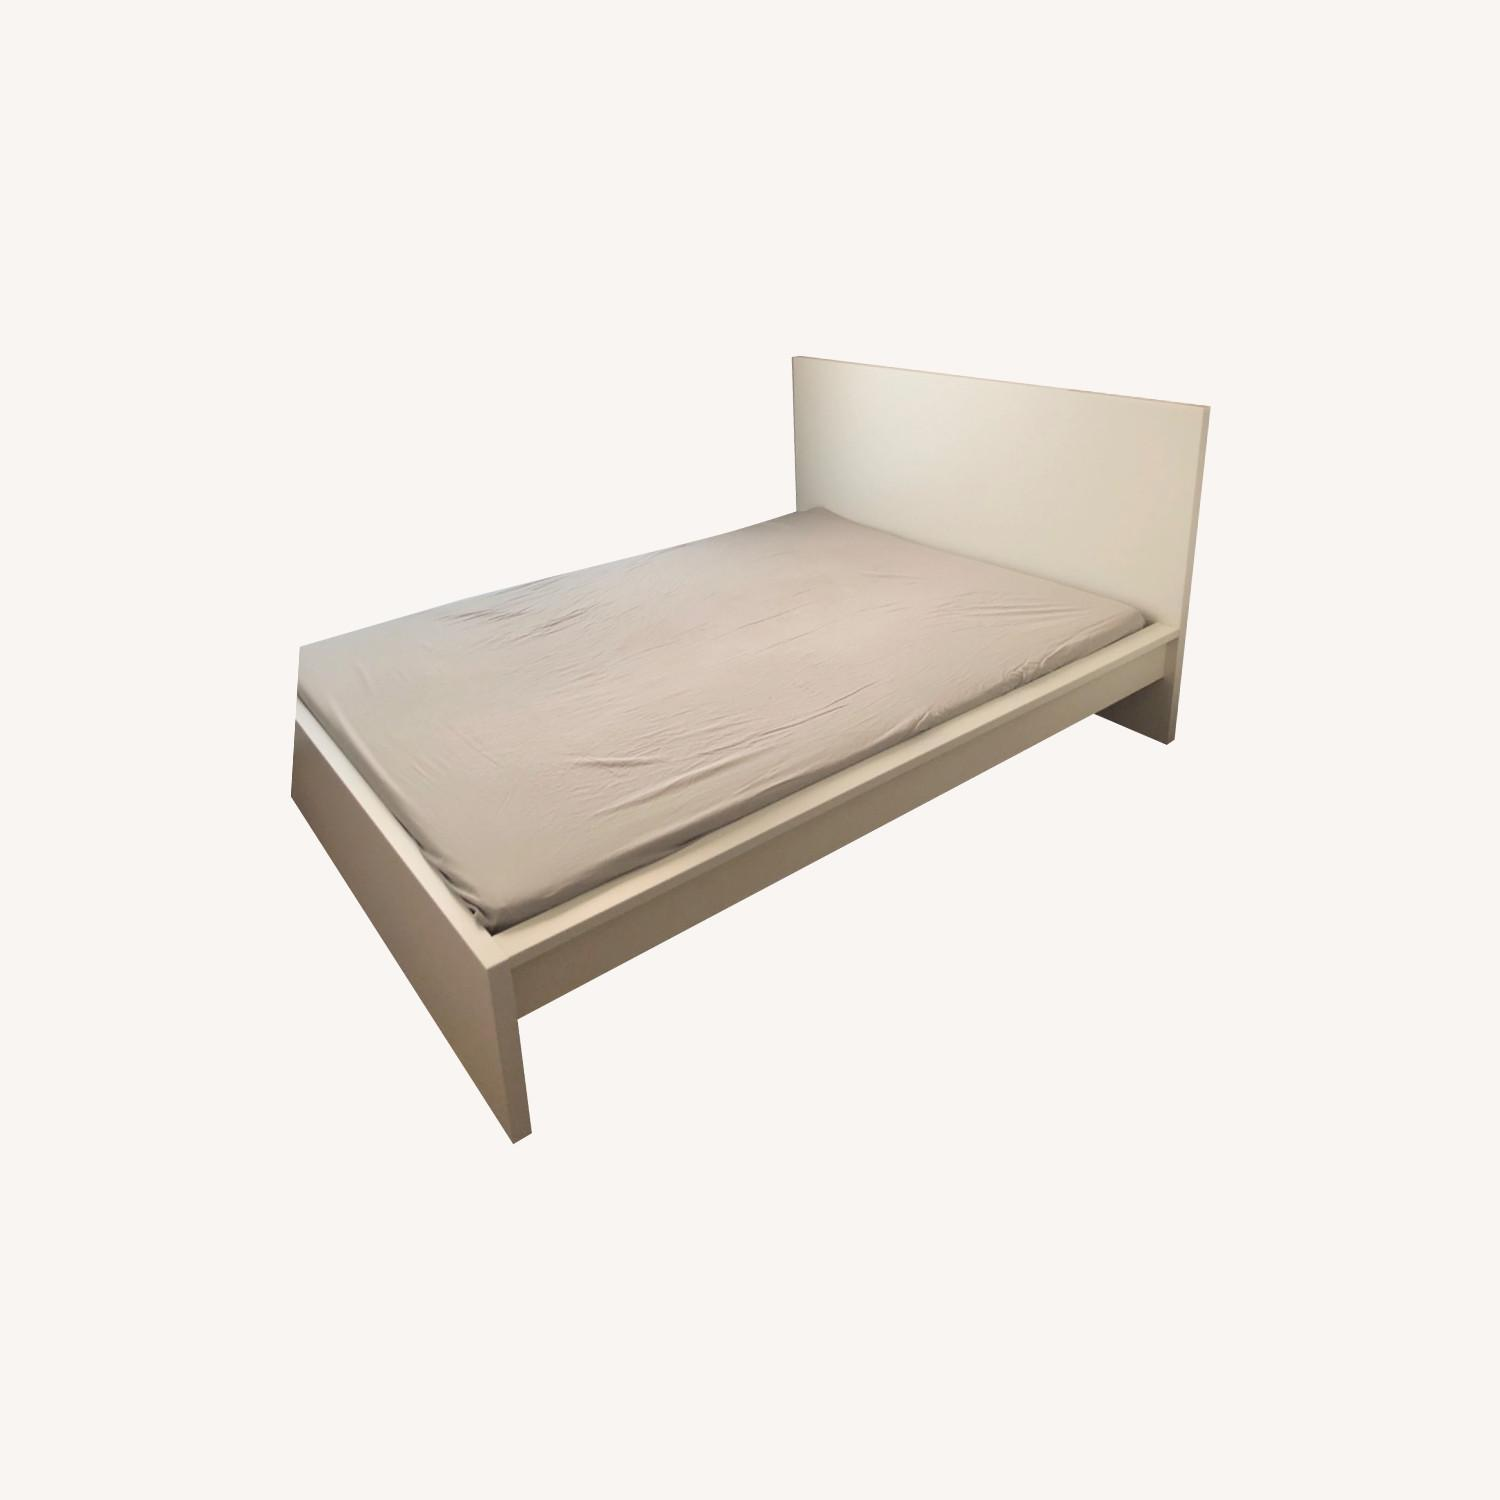 IKEA Malm White Queen Size Bed - image-0